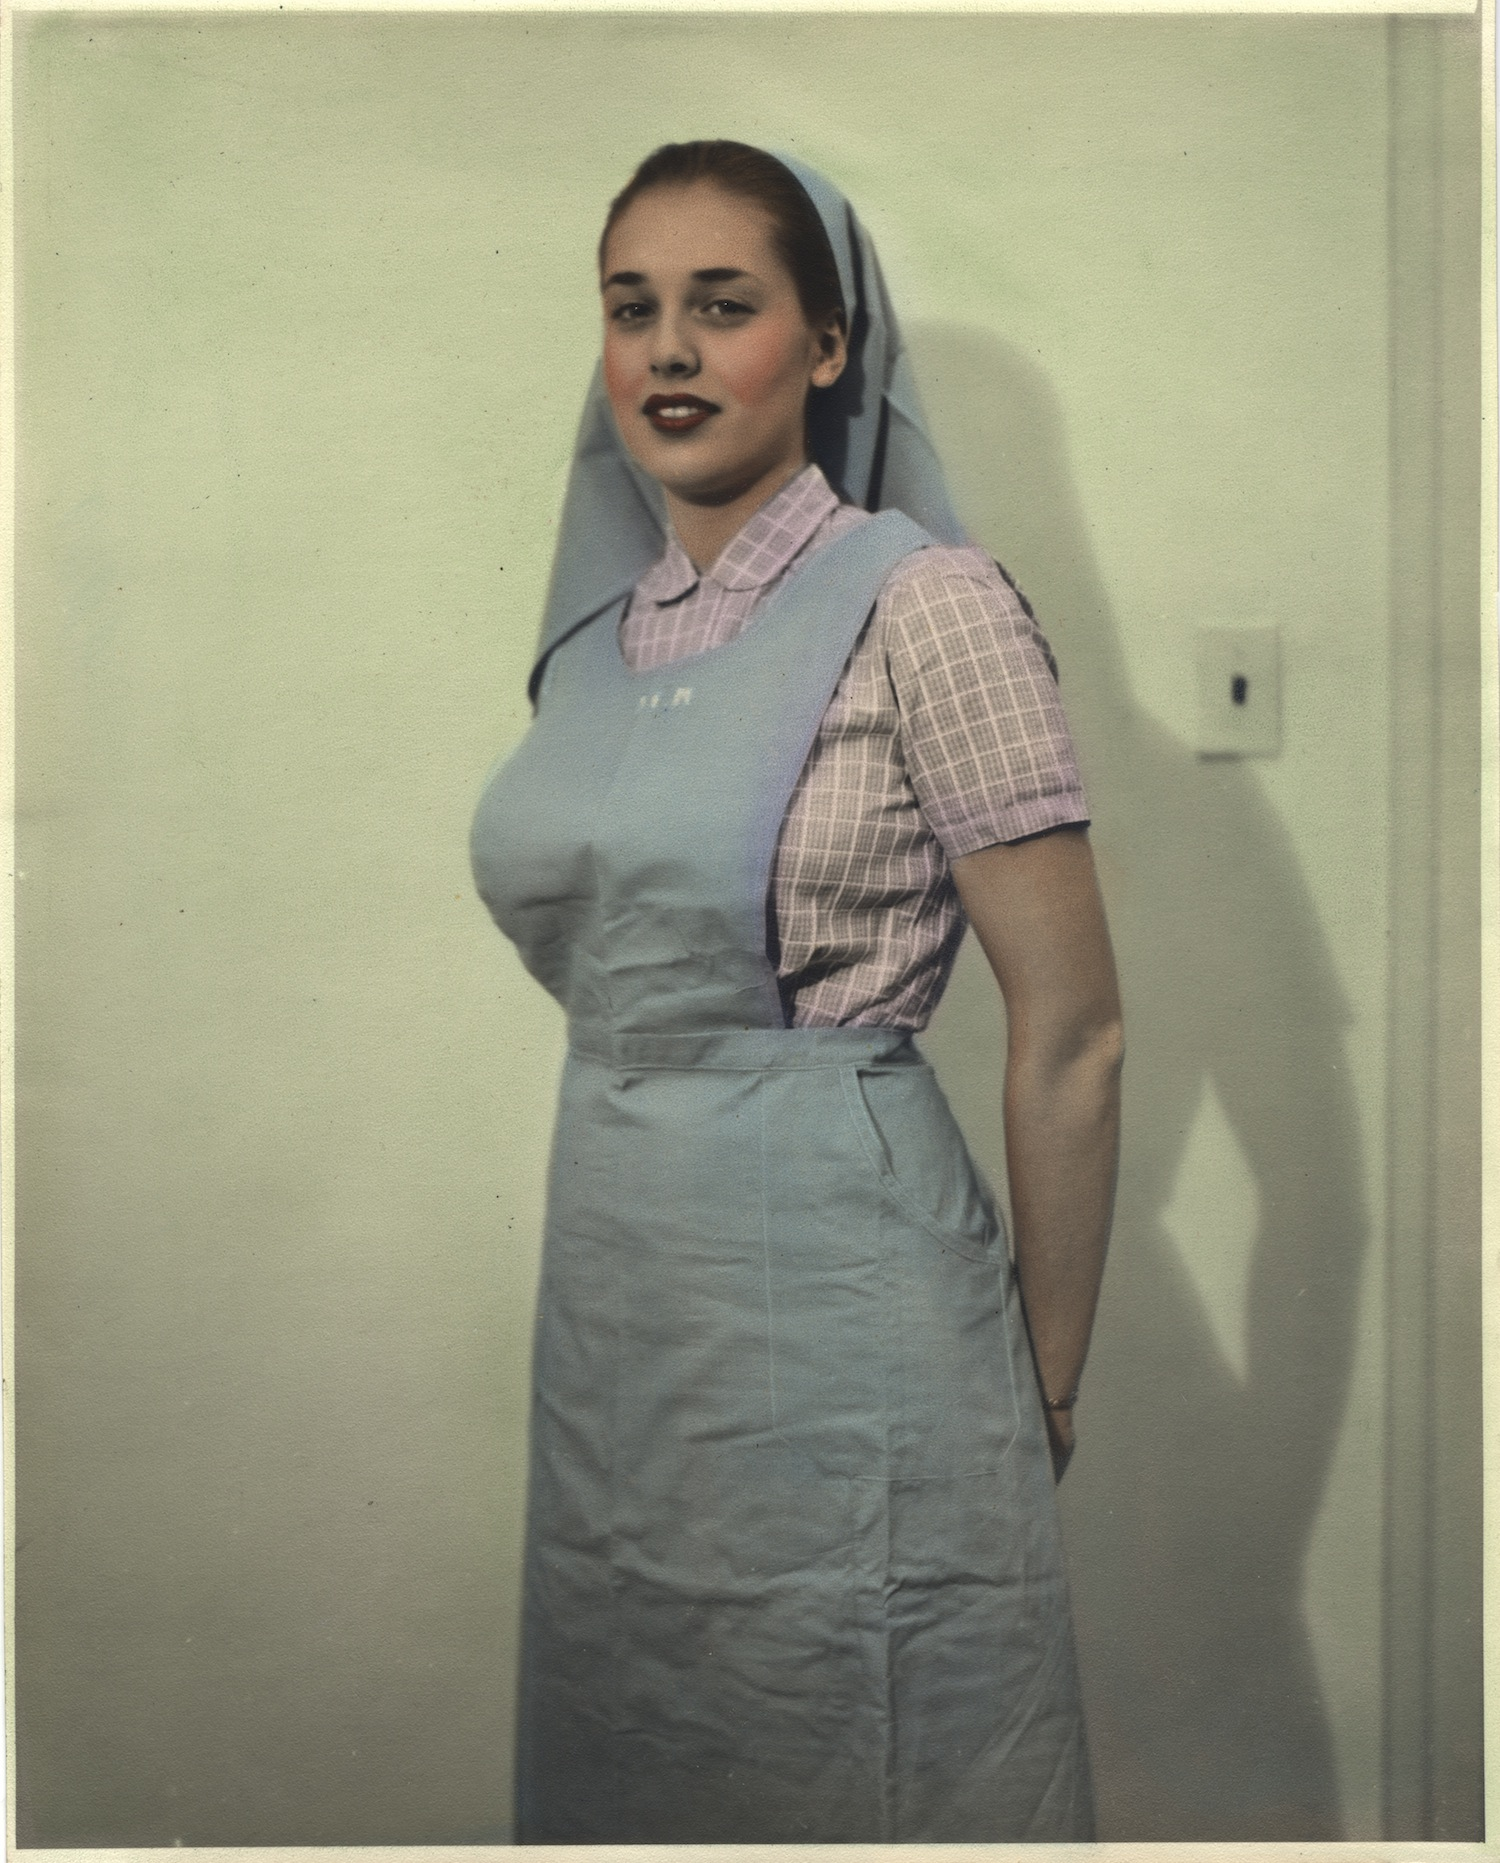 Nurse wearing uniform from Morocco